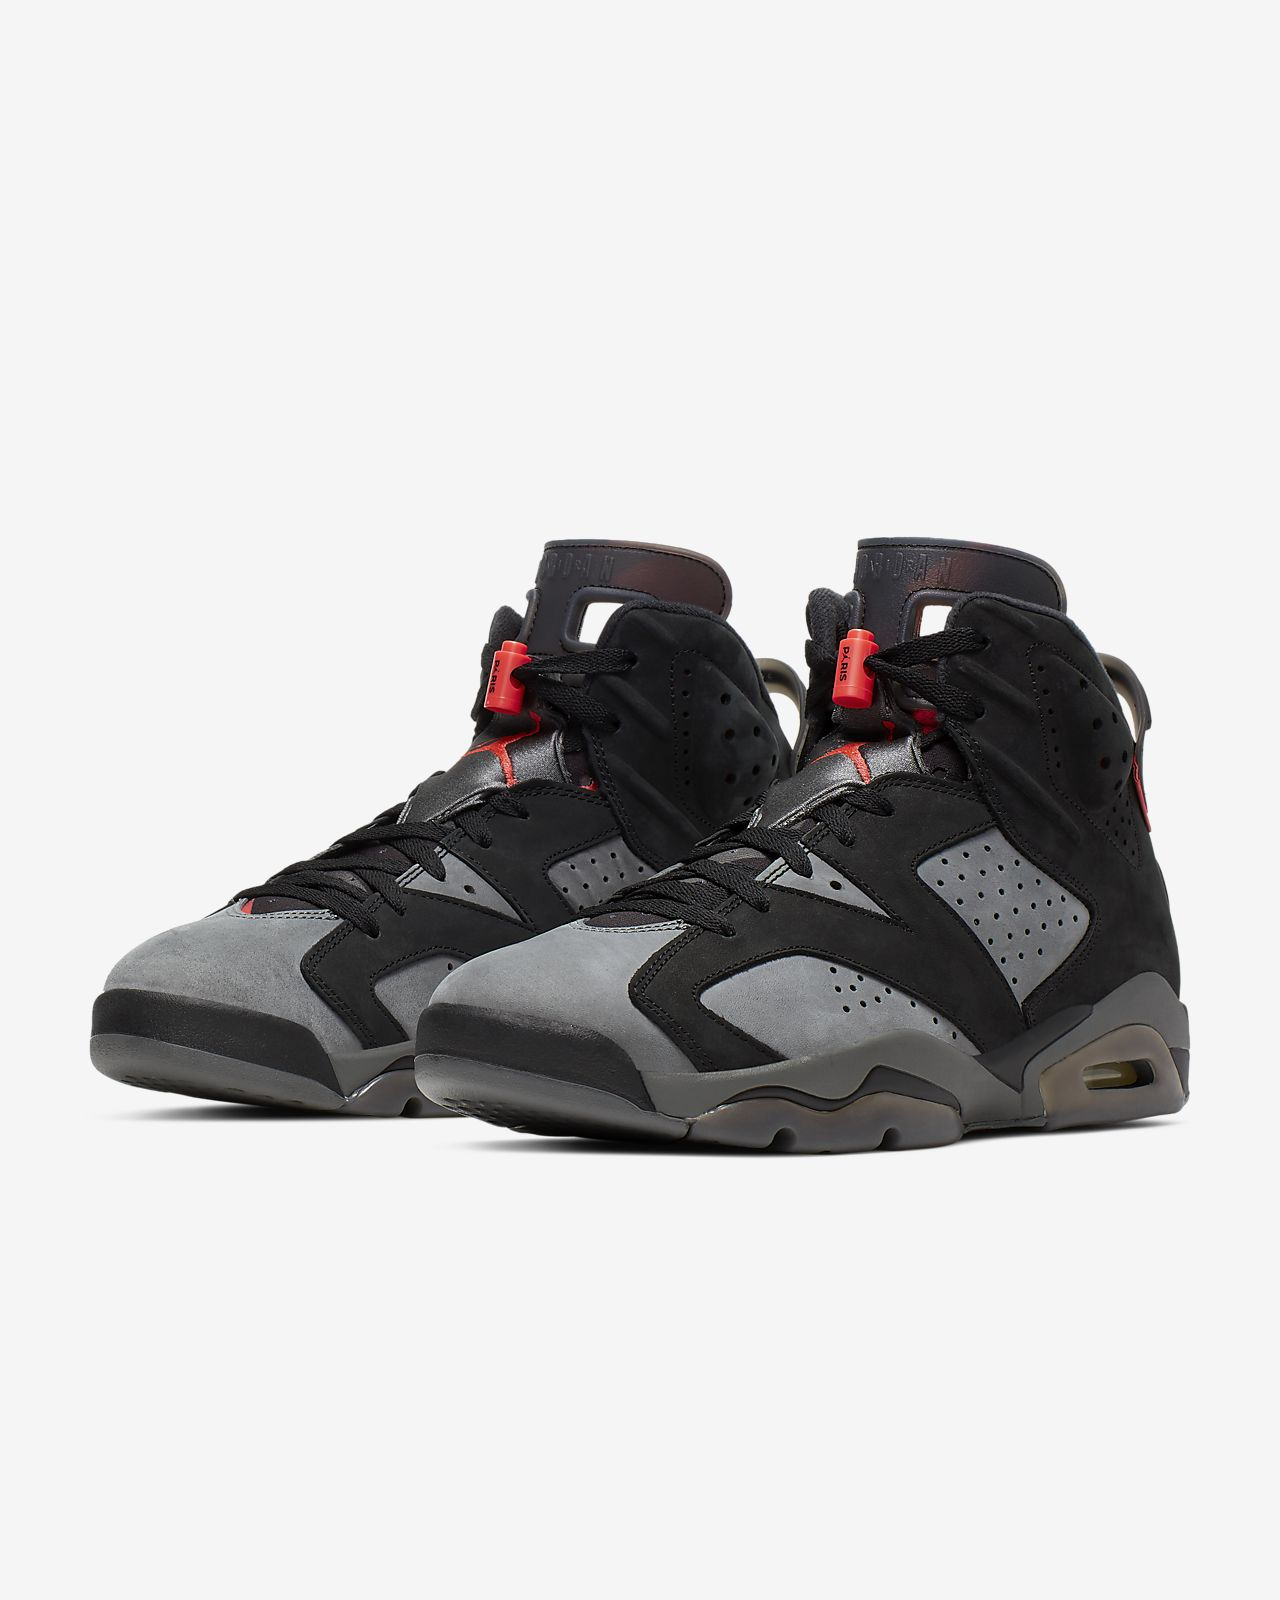 save up to 80% best quality pretty nice Buty męskie Air Jordan 6 Retro Paris Saint-Germain